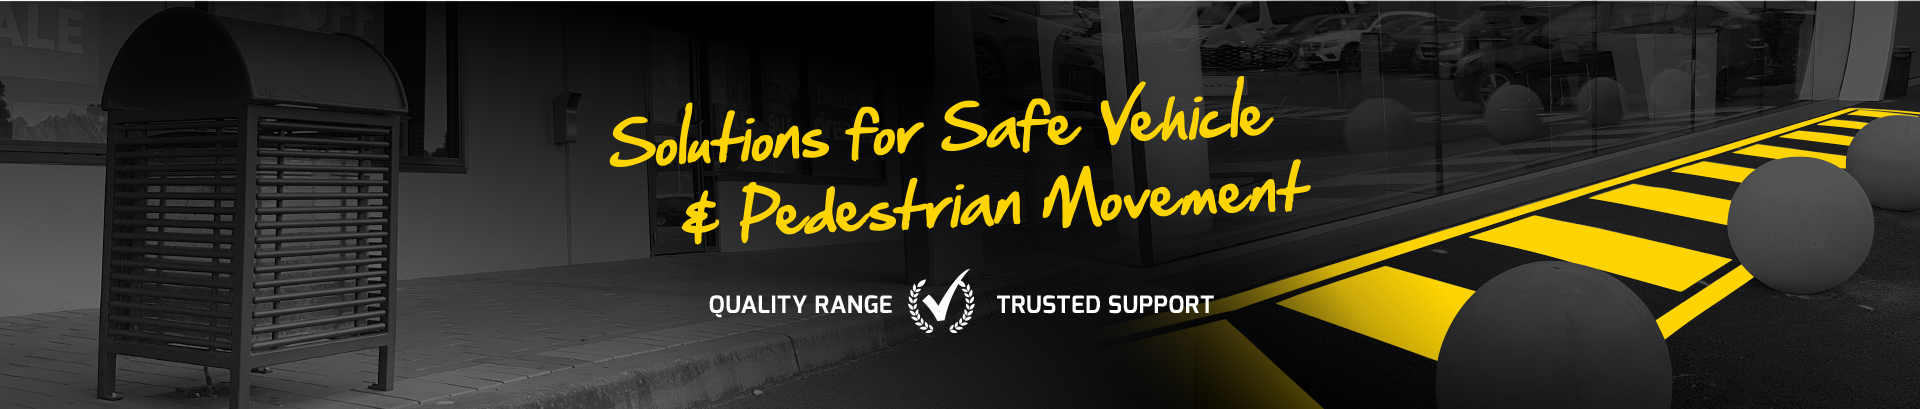 Area Safe Products - Quality Range - Trusted Support